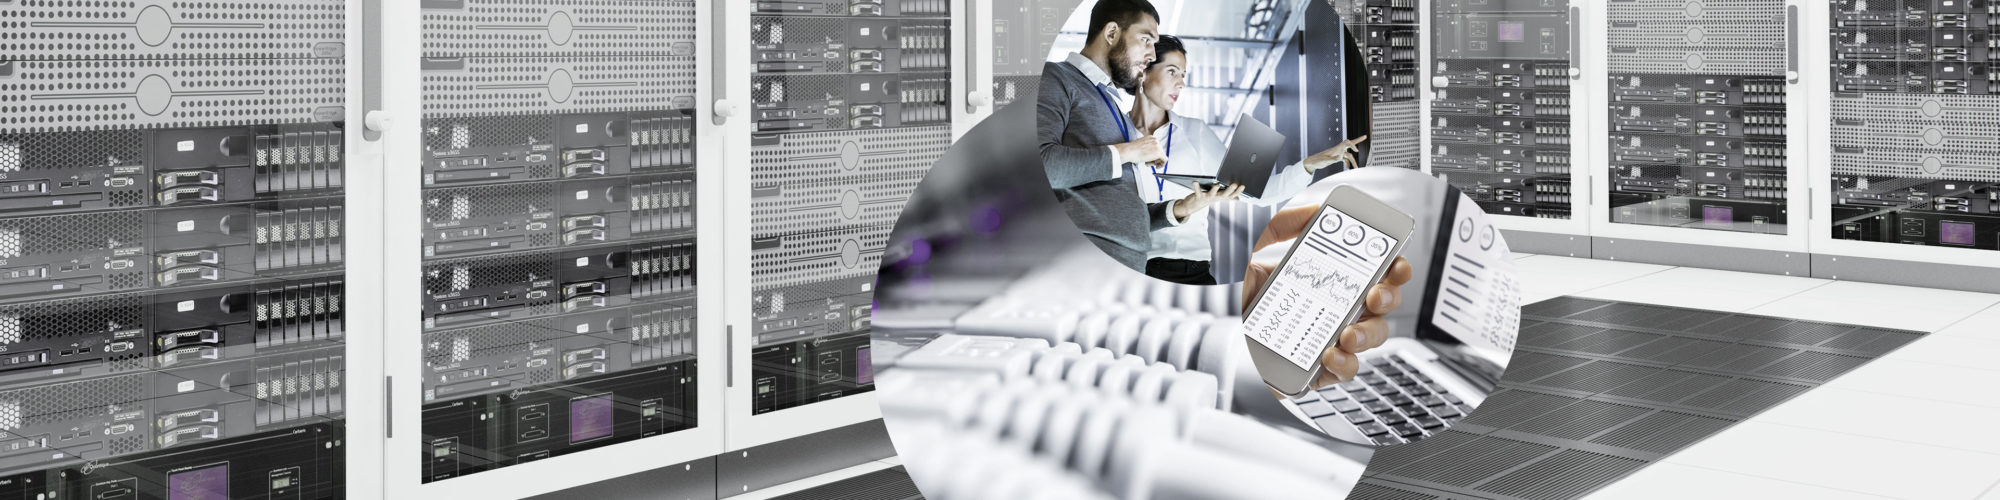 Picture of a data center, structured cabling, a laptop and a cell phone and two people standing with a laptop in a data center, valantic Division Digital Strategy